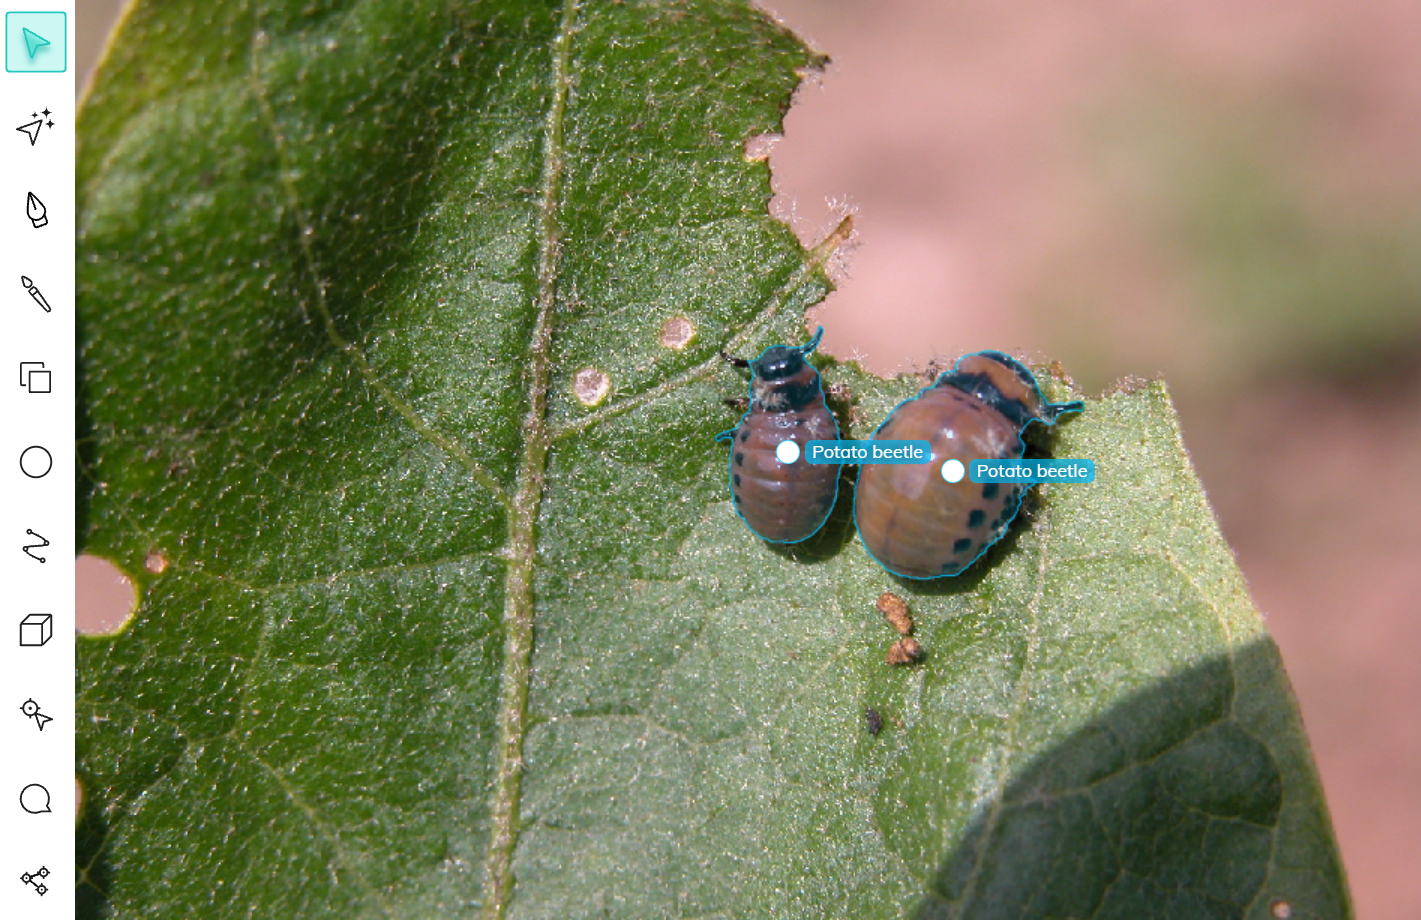 Two potato beetles labeled using auto-annotation tool in V7